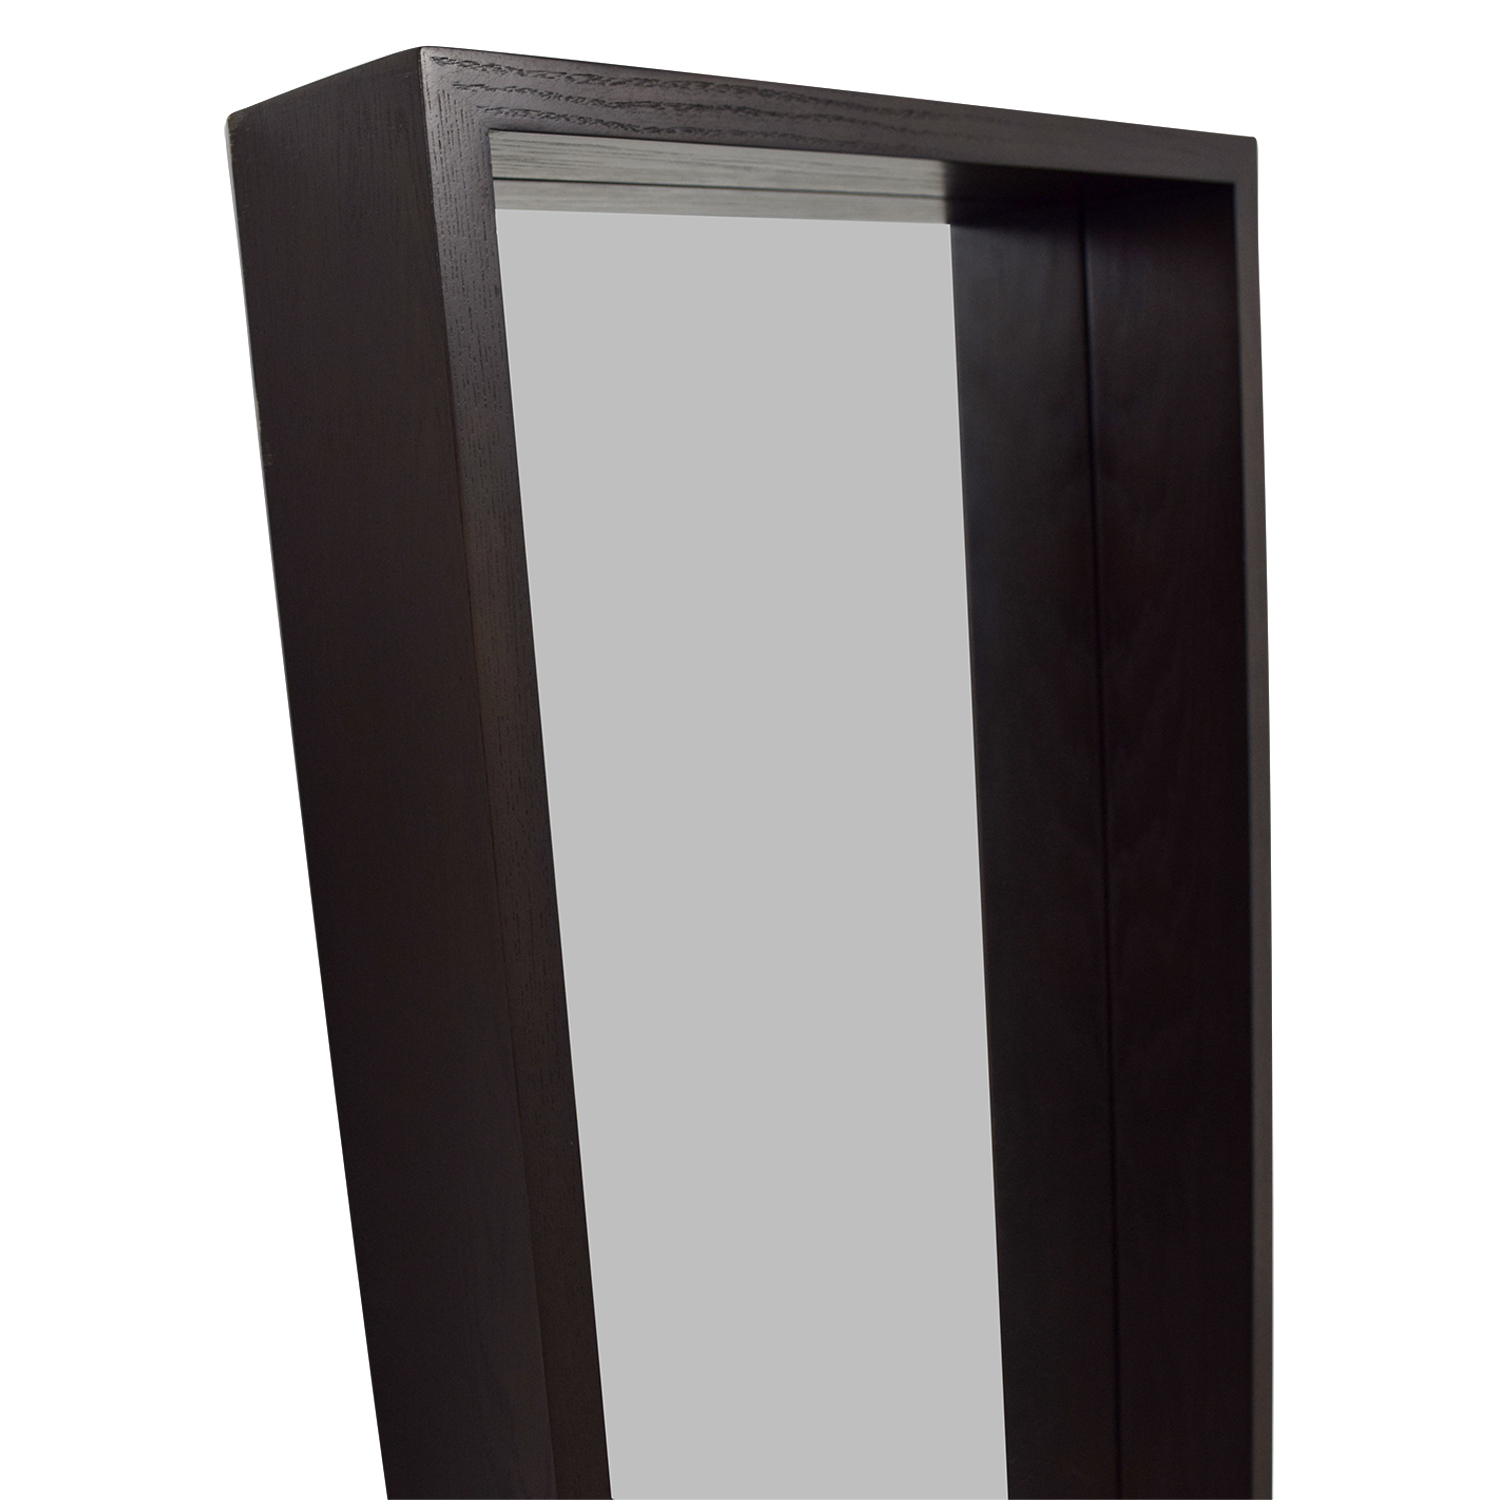 73% OFF - West Elm West Elm Wood Framed Floor Mirror / Decor